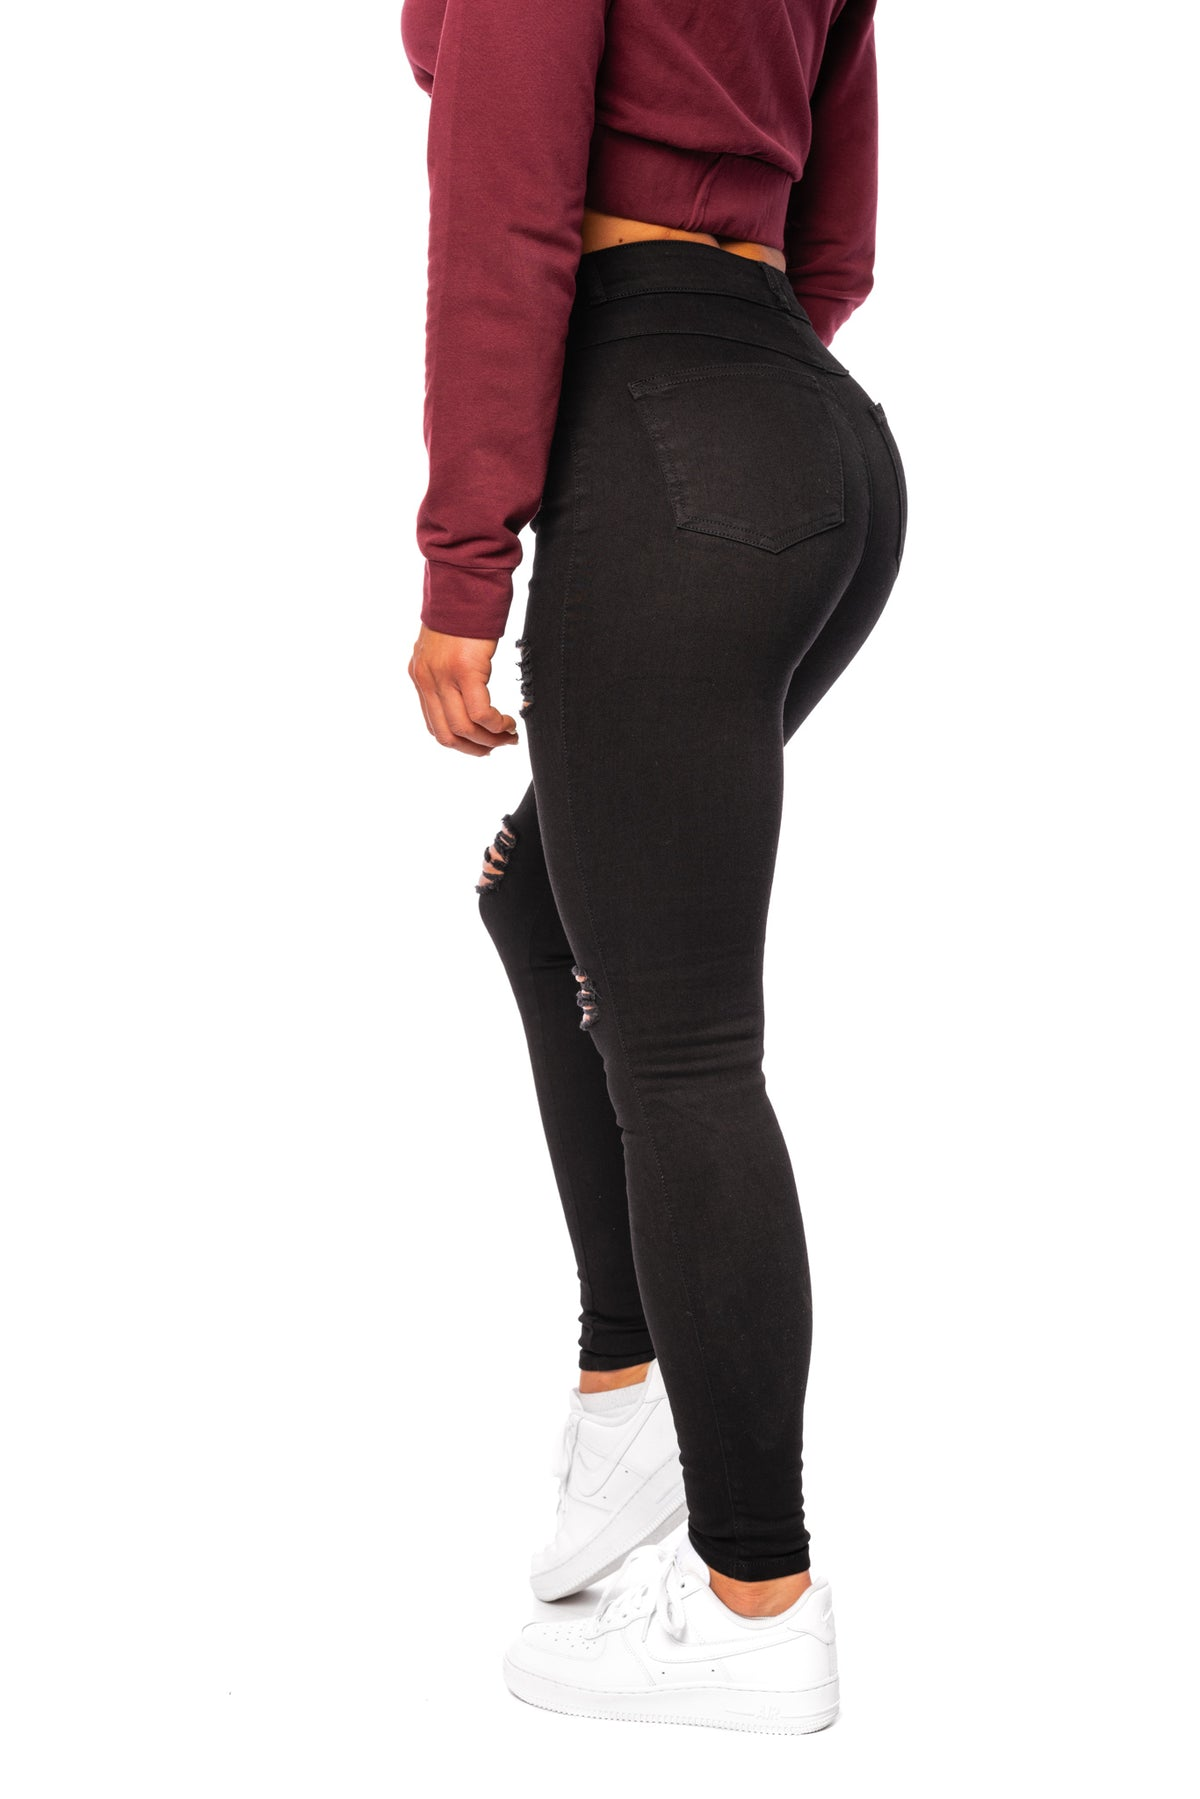 Womens Regular 4 Hole Ripped High Waisted Fitjeans - Black